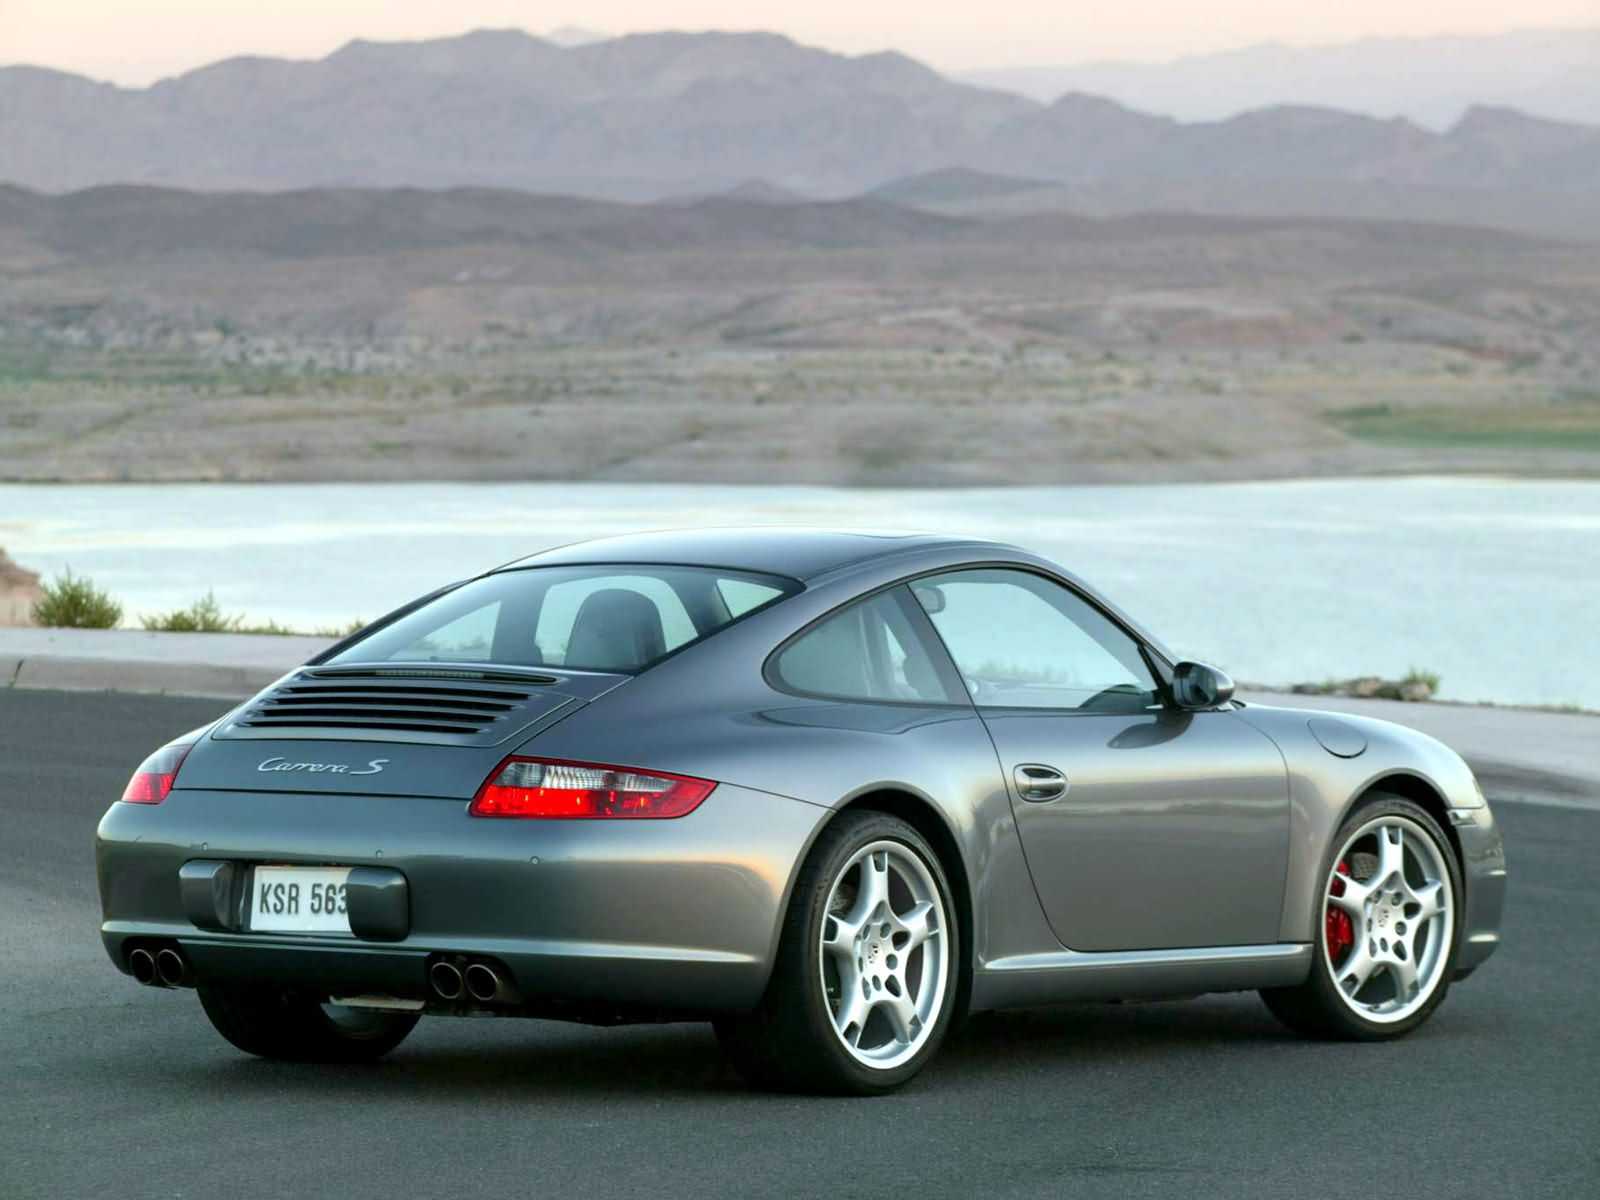 Porsche 997 911 Carrera S photo 18197